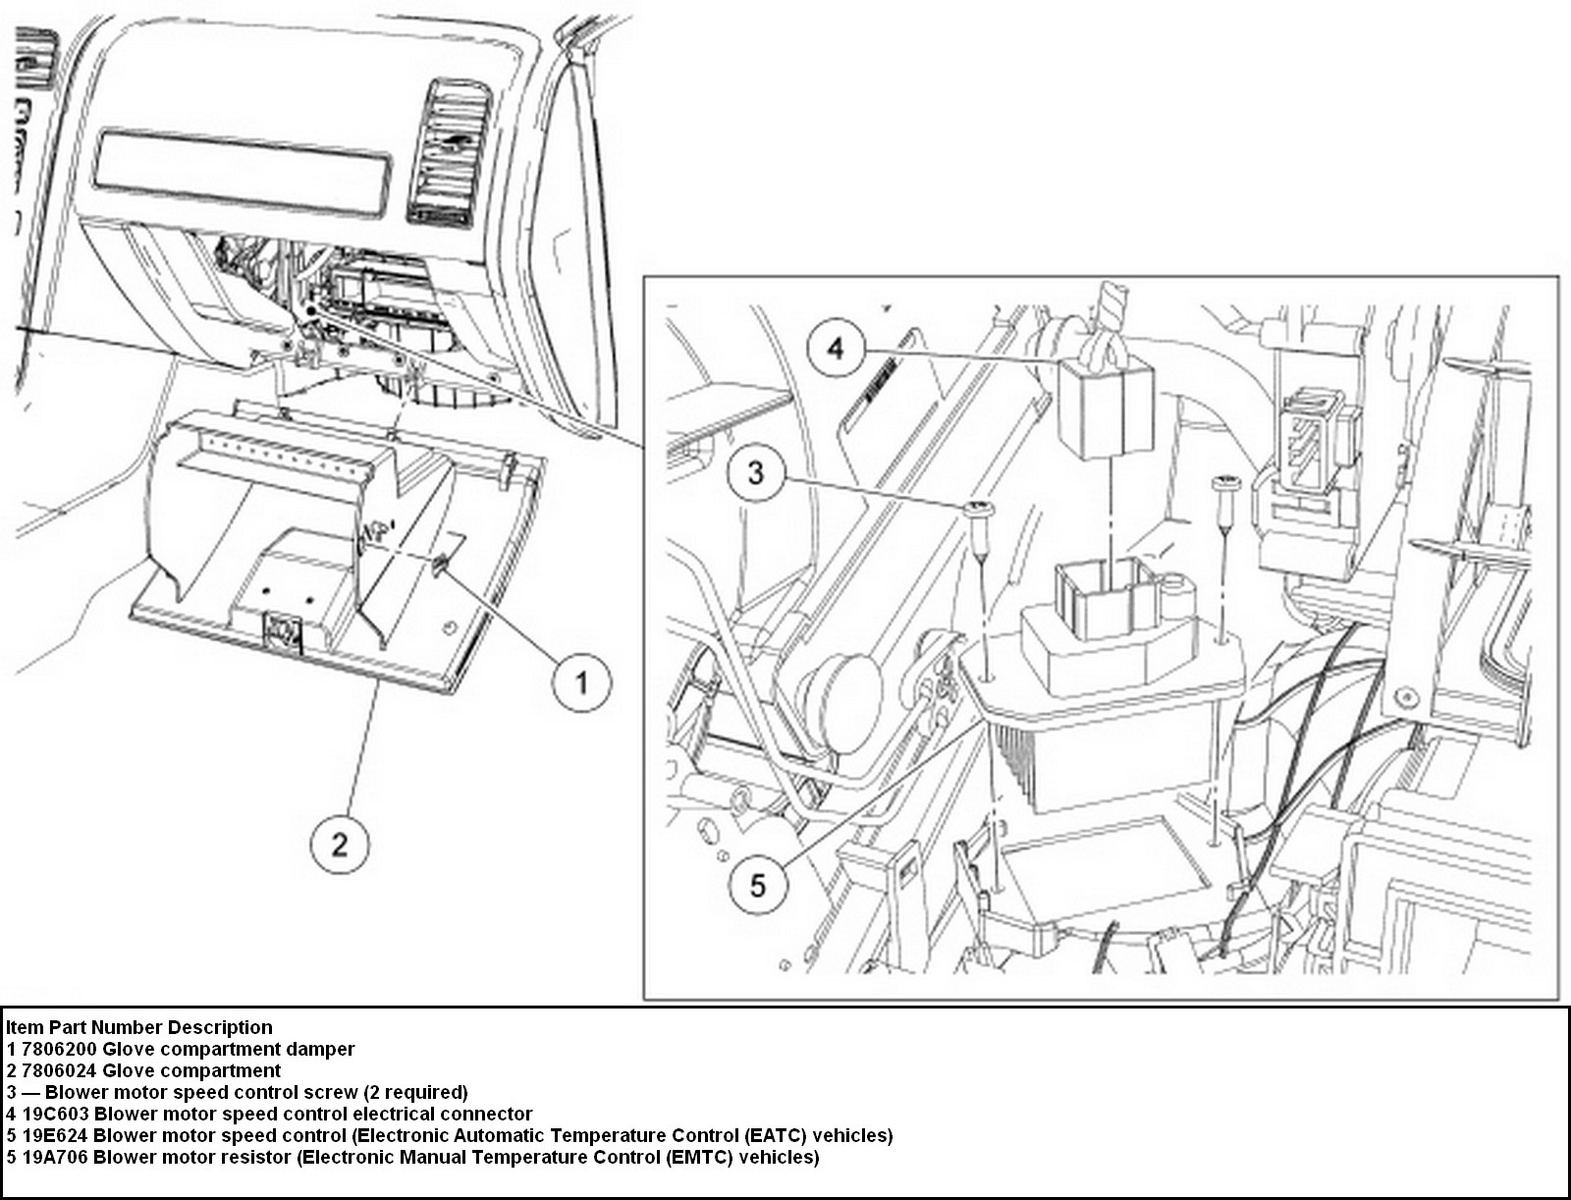 pic 2289865381668256363 1600x1200 ford edge questions how do you remove and replace install a 2012 ford edge fuse box diagram at crackthecode.co